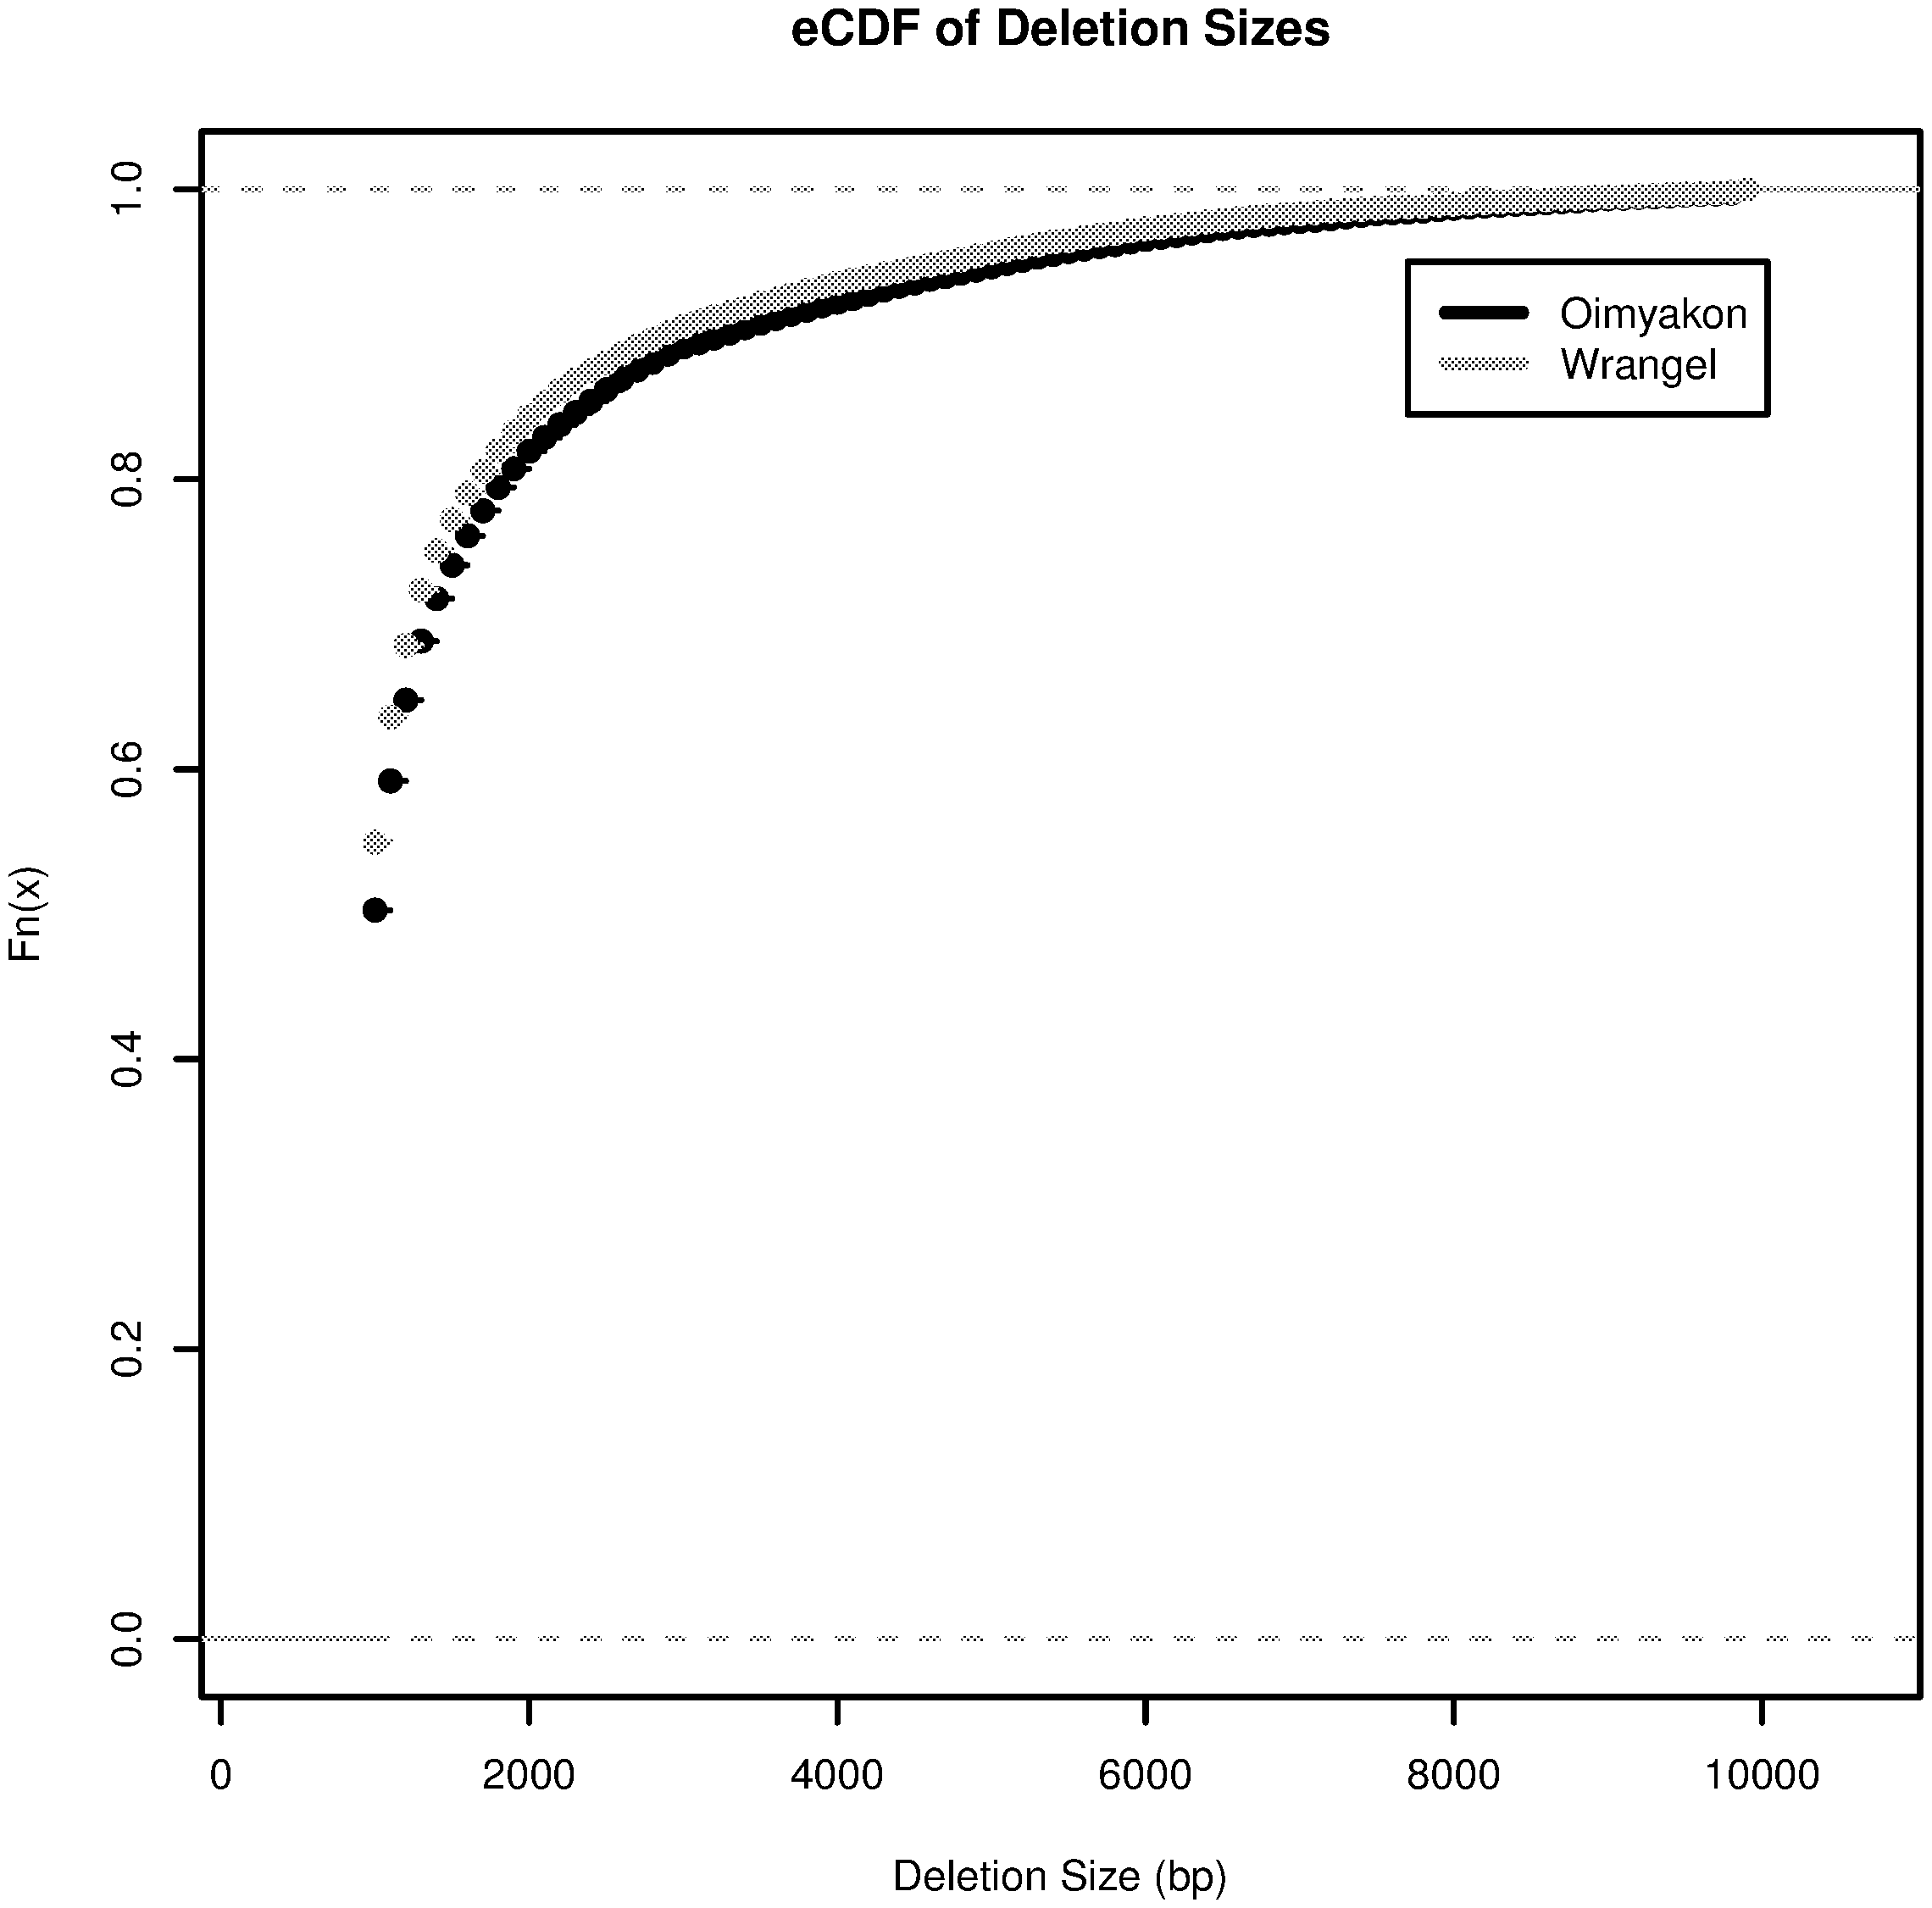 eCDF for the size distribution of deletions in the Oimyakon and Wrangel island genomes.